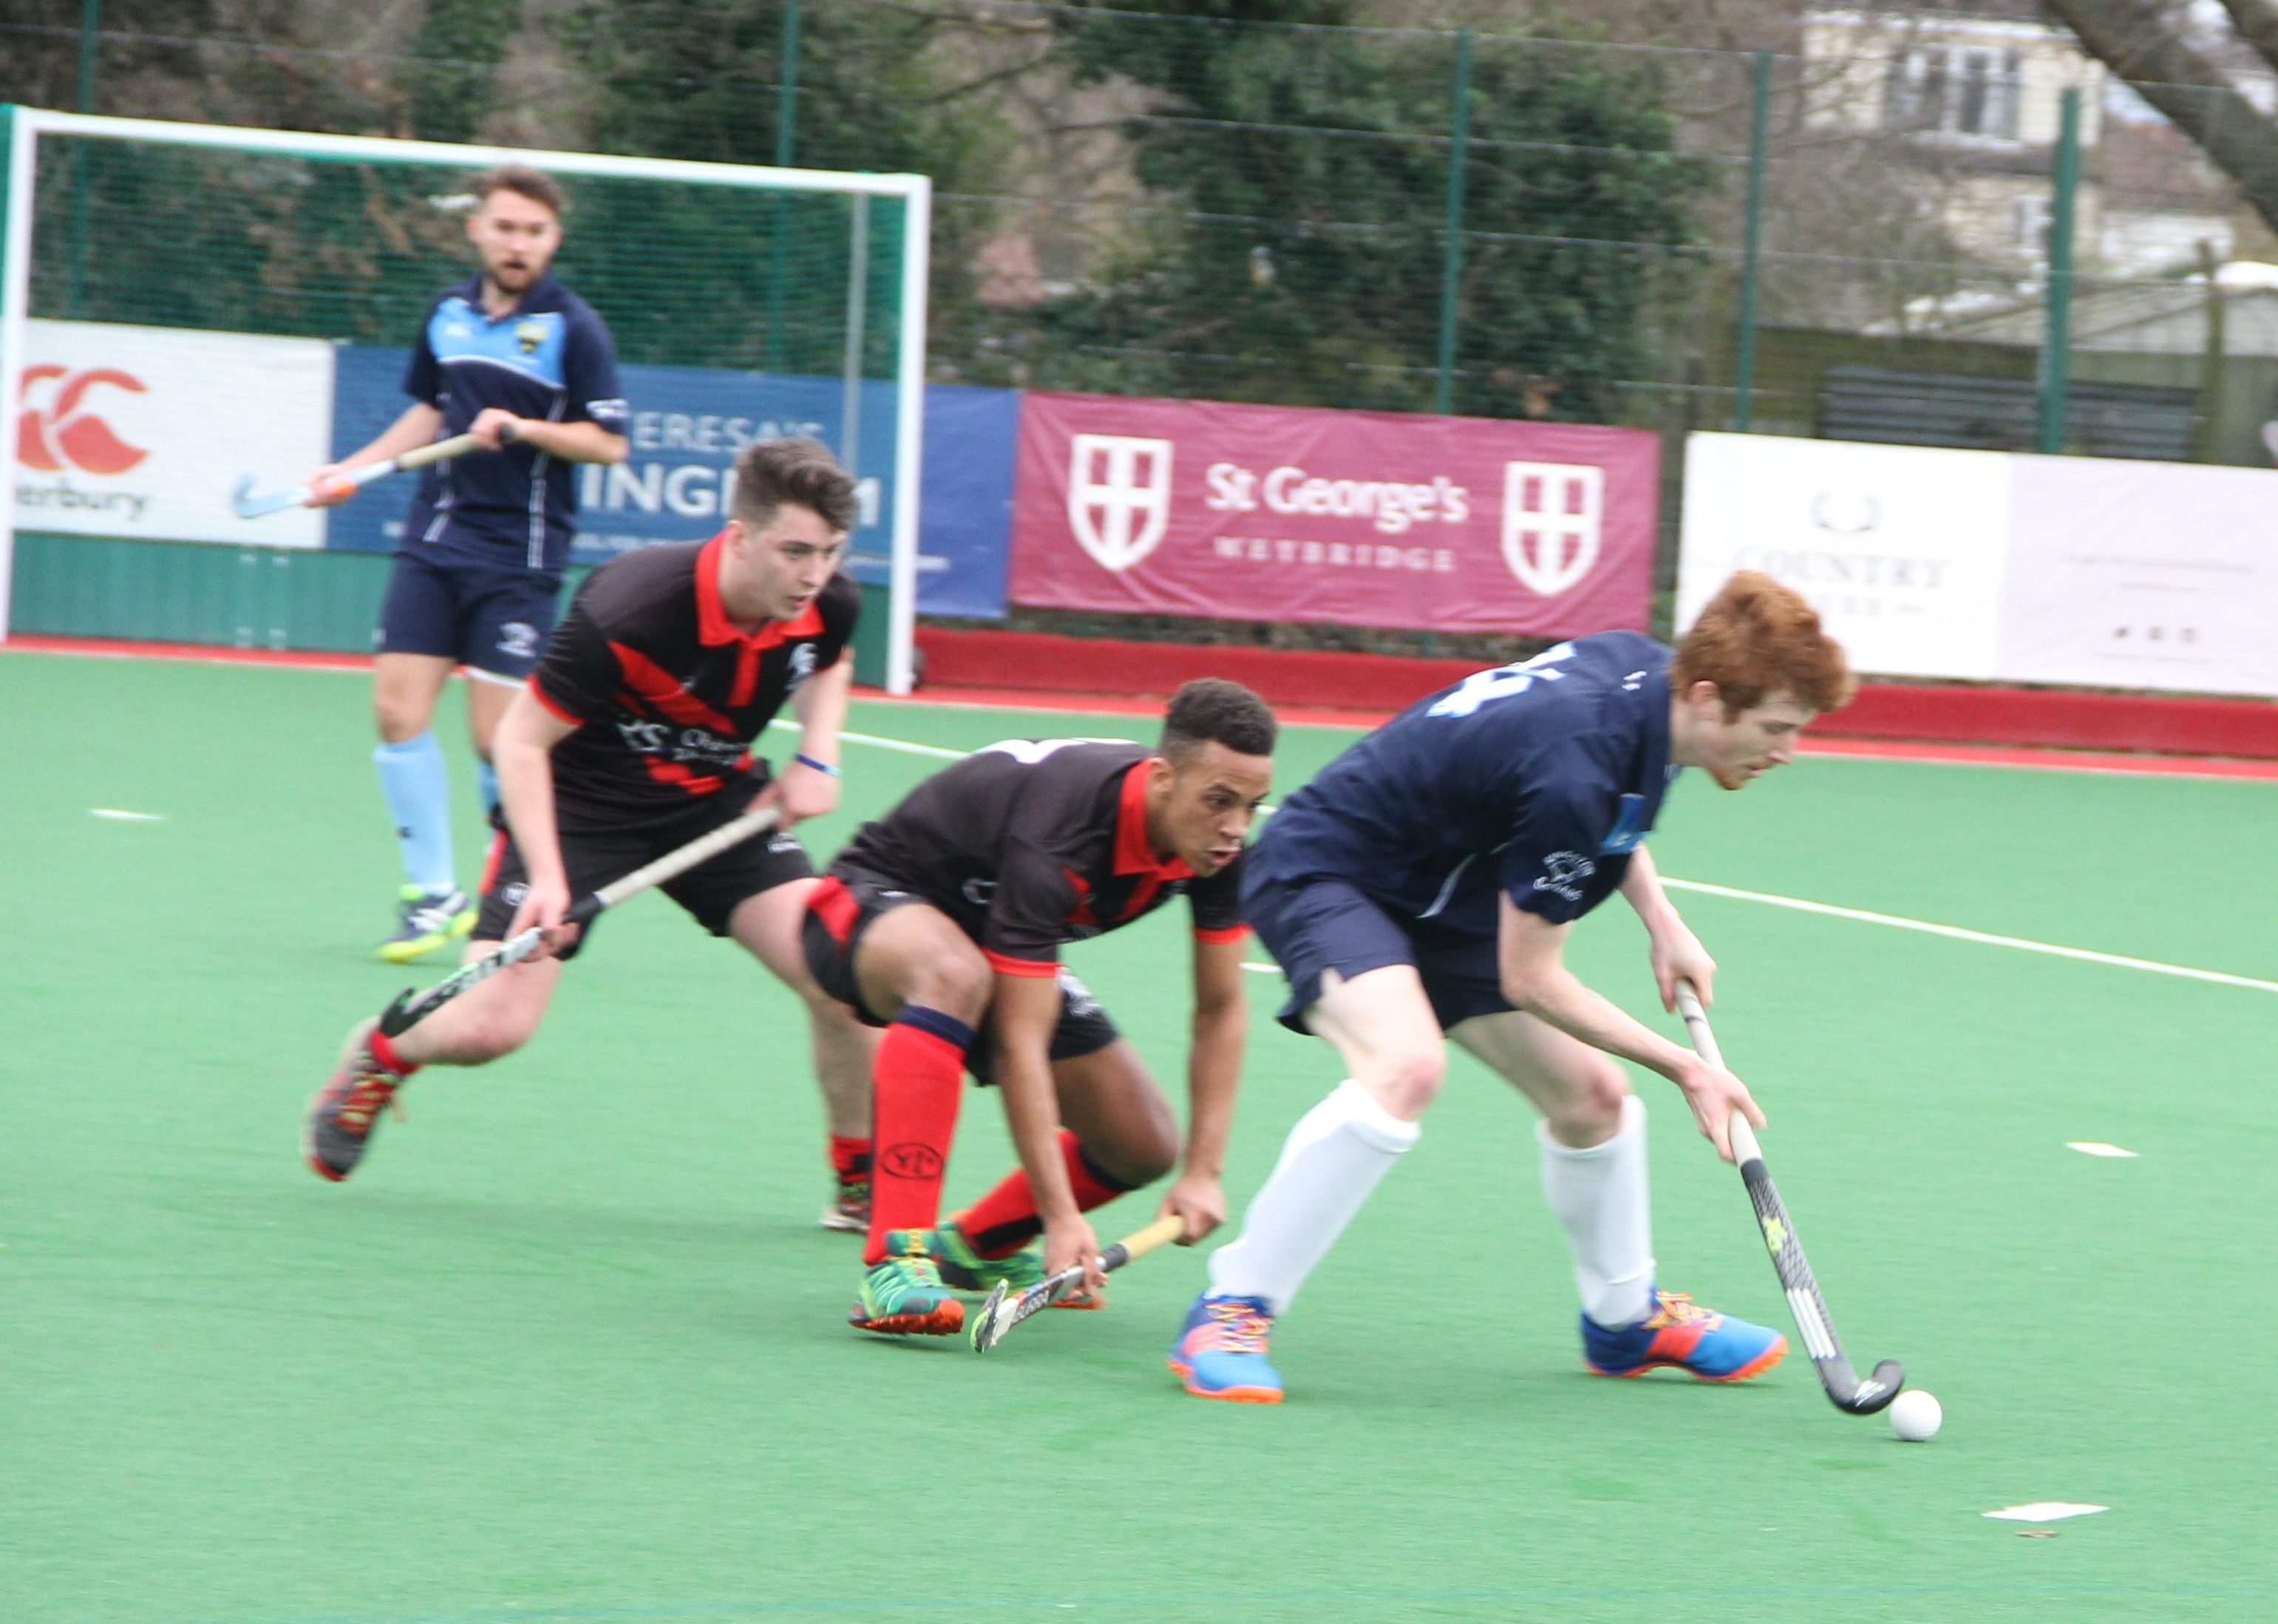 Ben Spencer shielding the ball from defenders Photo: Soile Ntutu